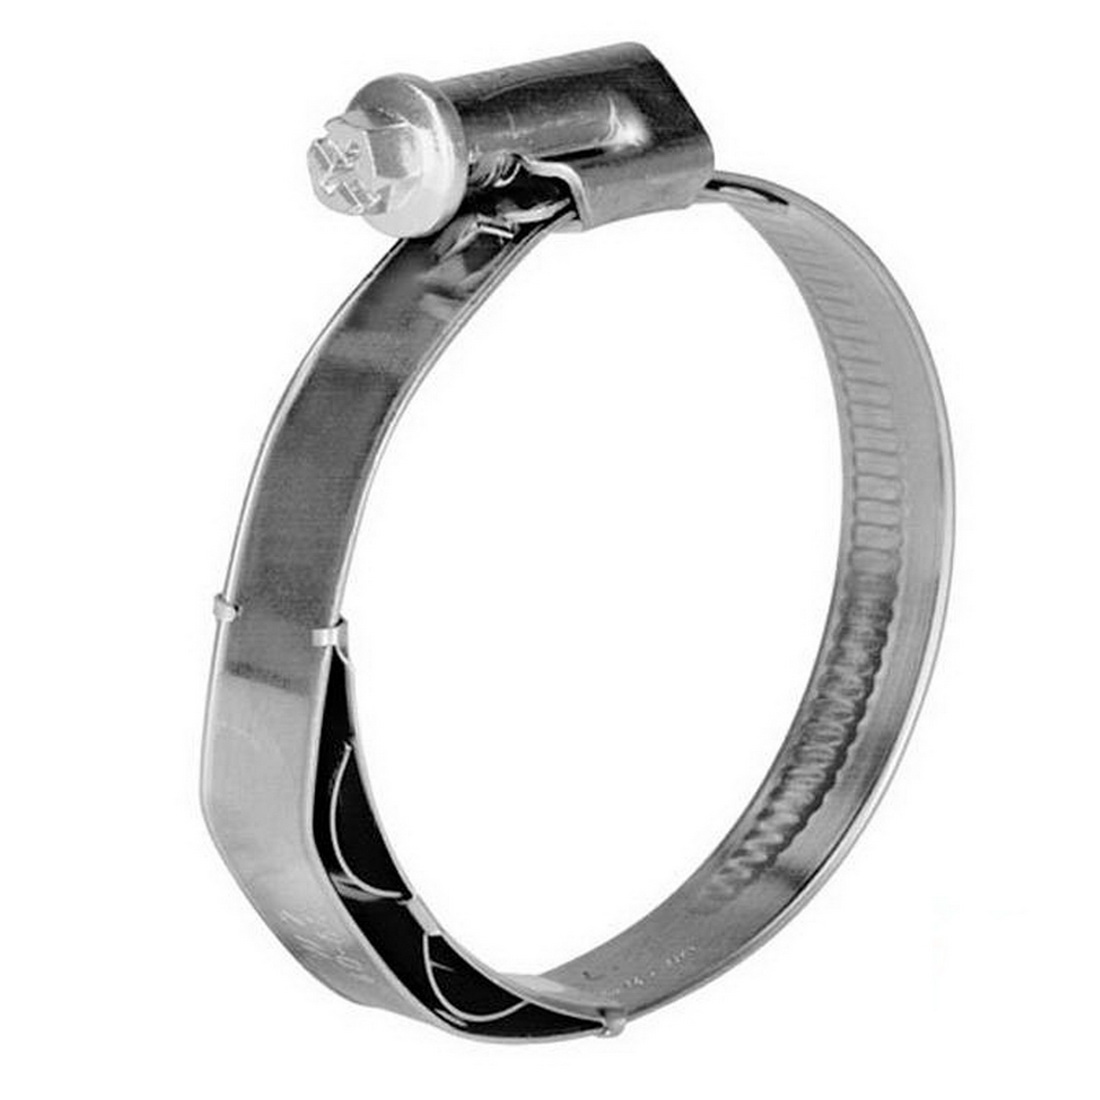 TORRO Worm Drive Hose Clamp 50-70mm 12mm Band W3 430 Stainless Steel P1 WDHC507012W3